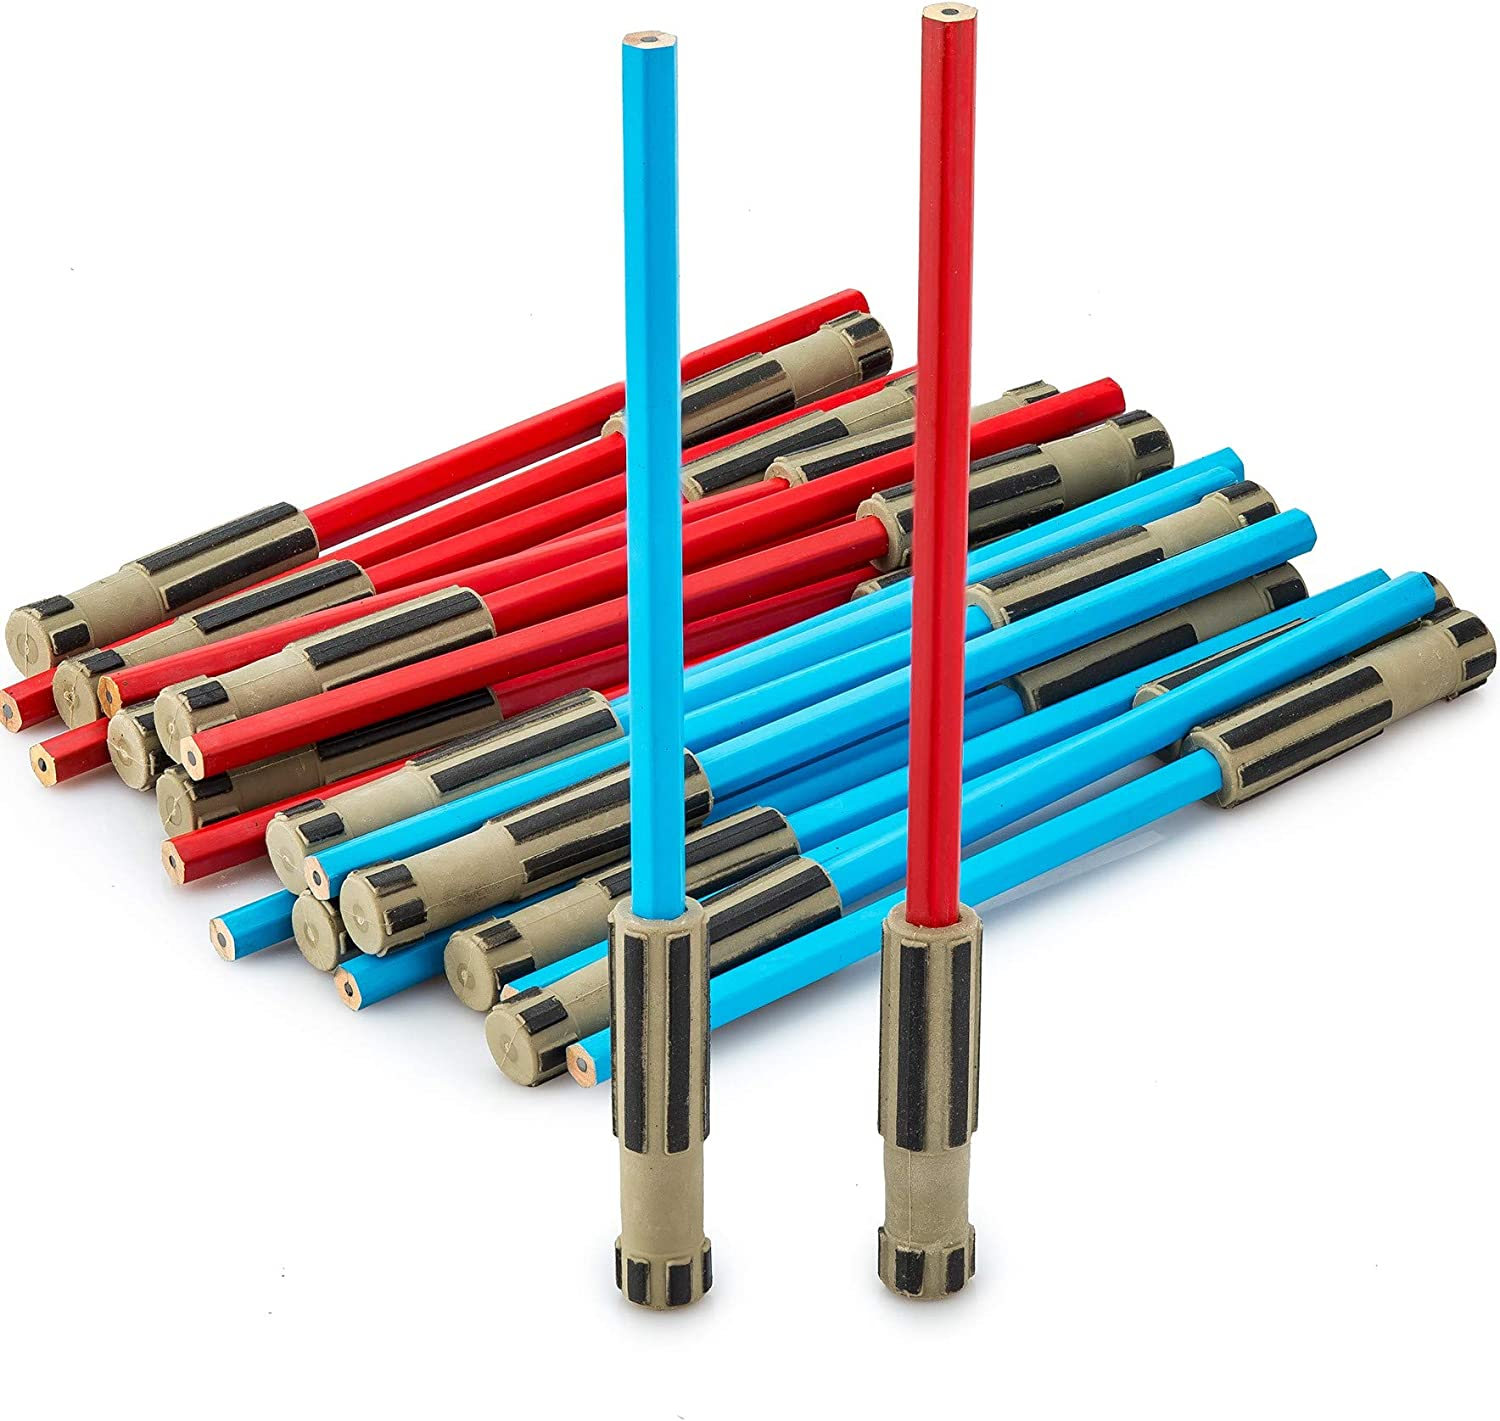 Light Saber Pencils